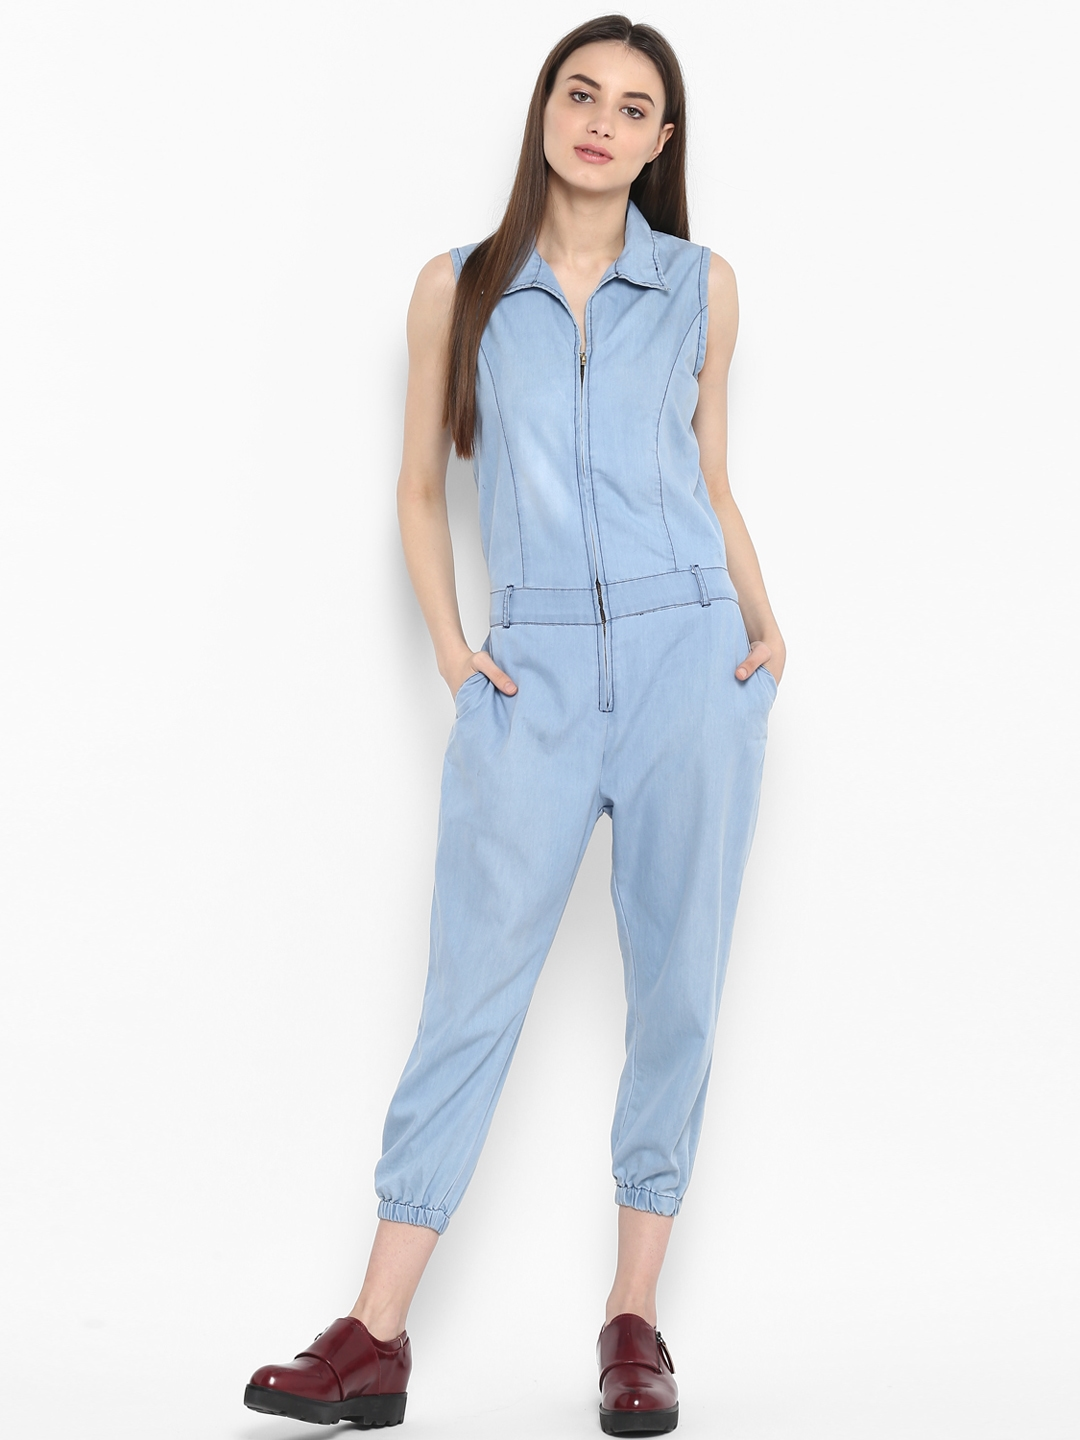 5fdfceb982 Buy StyleStone Blue Faded Denim Capri Jumpsuit - Jumpsuit for Women ...